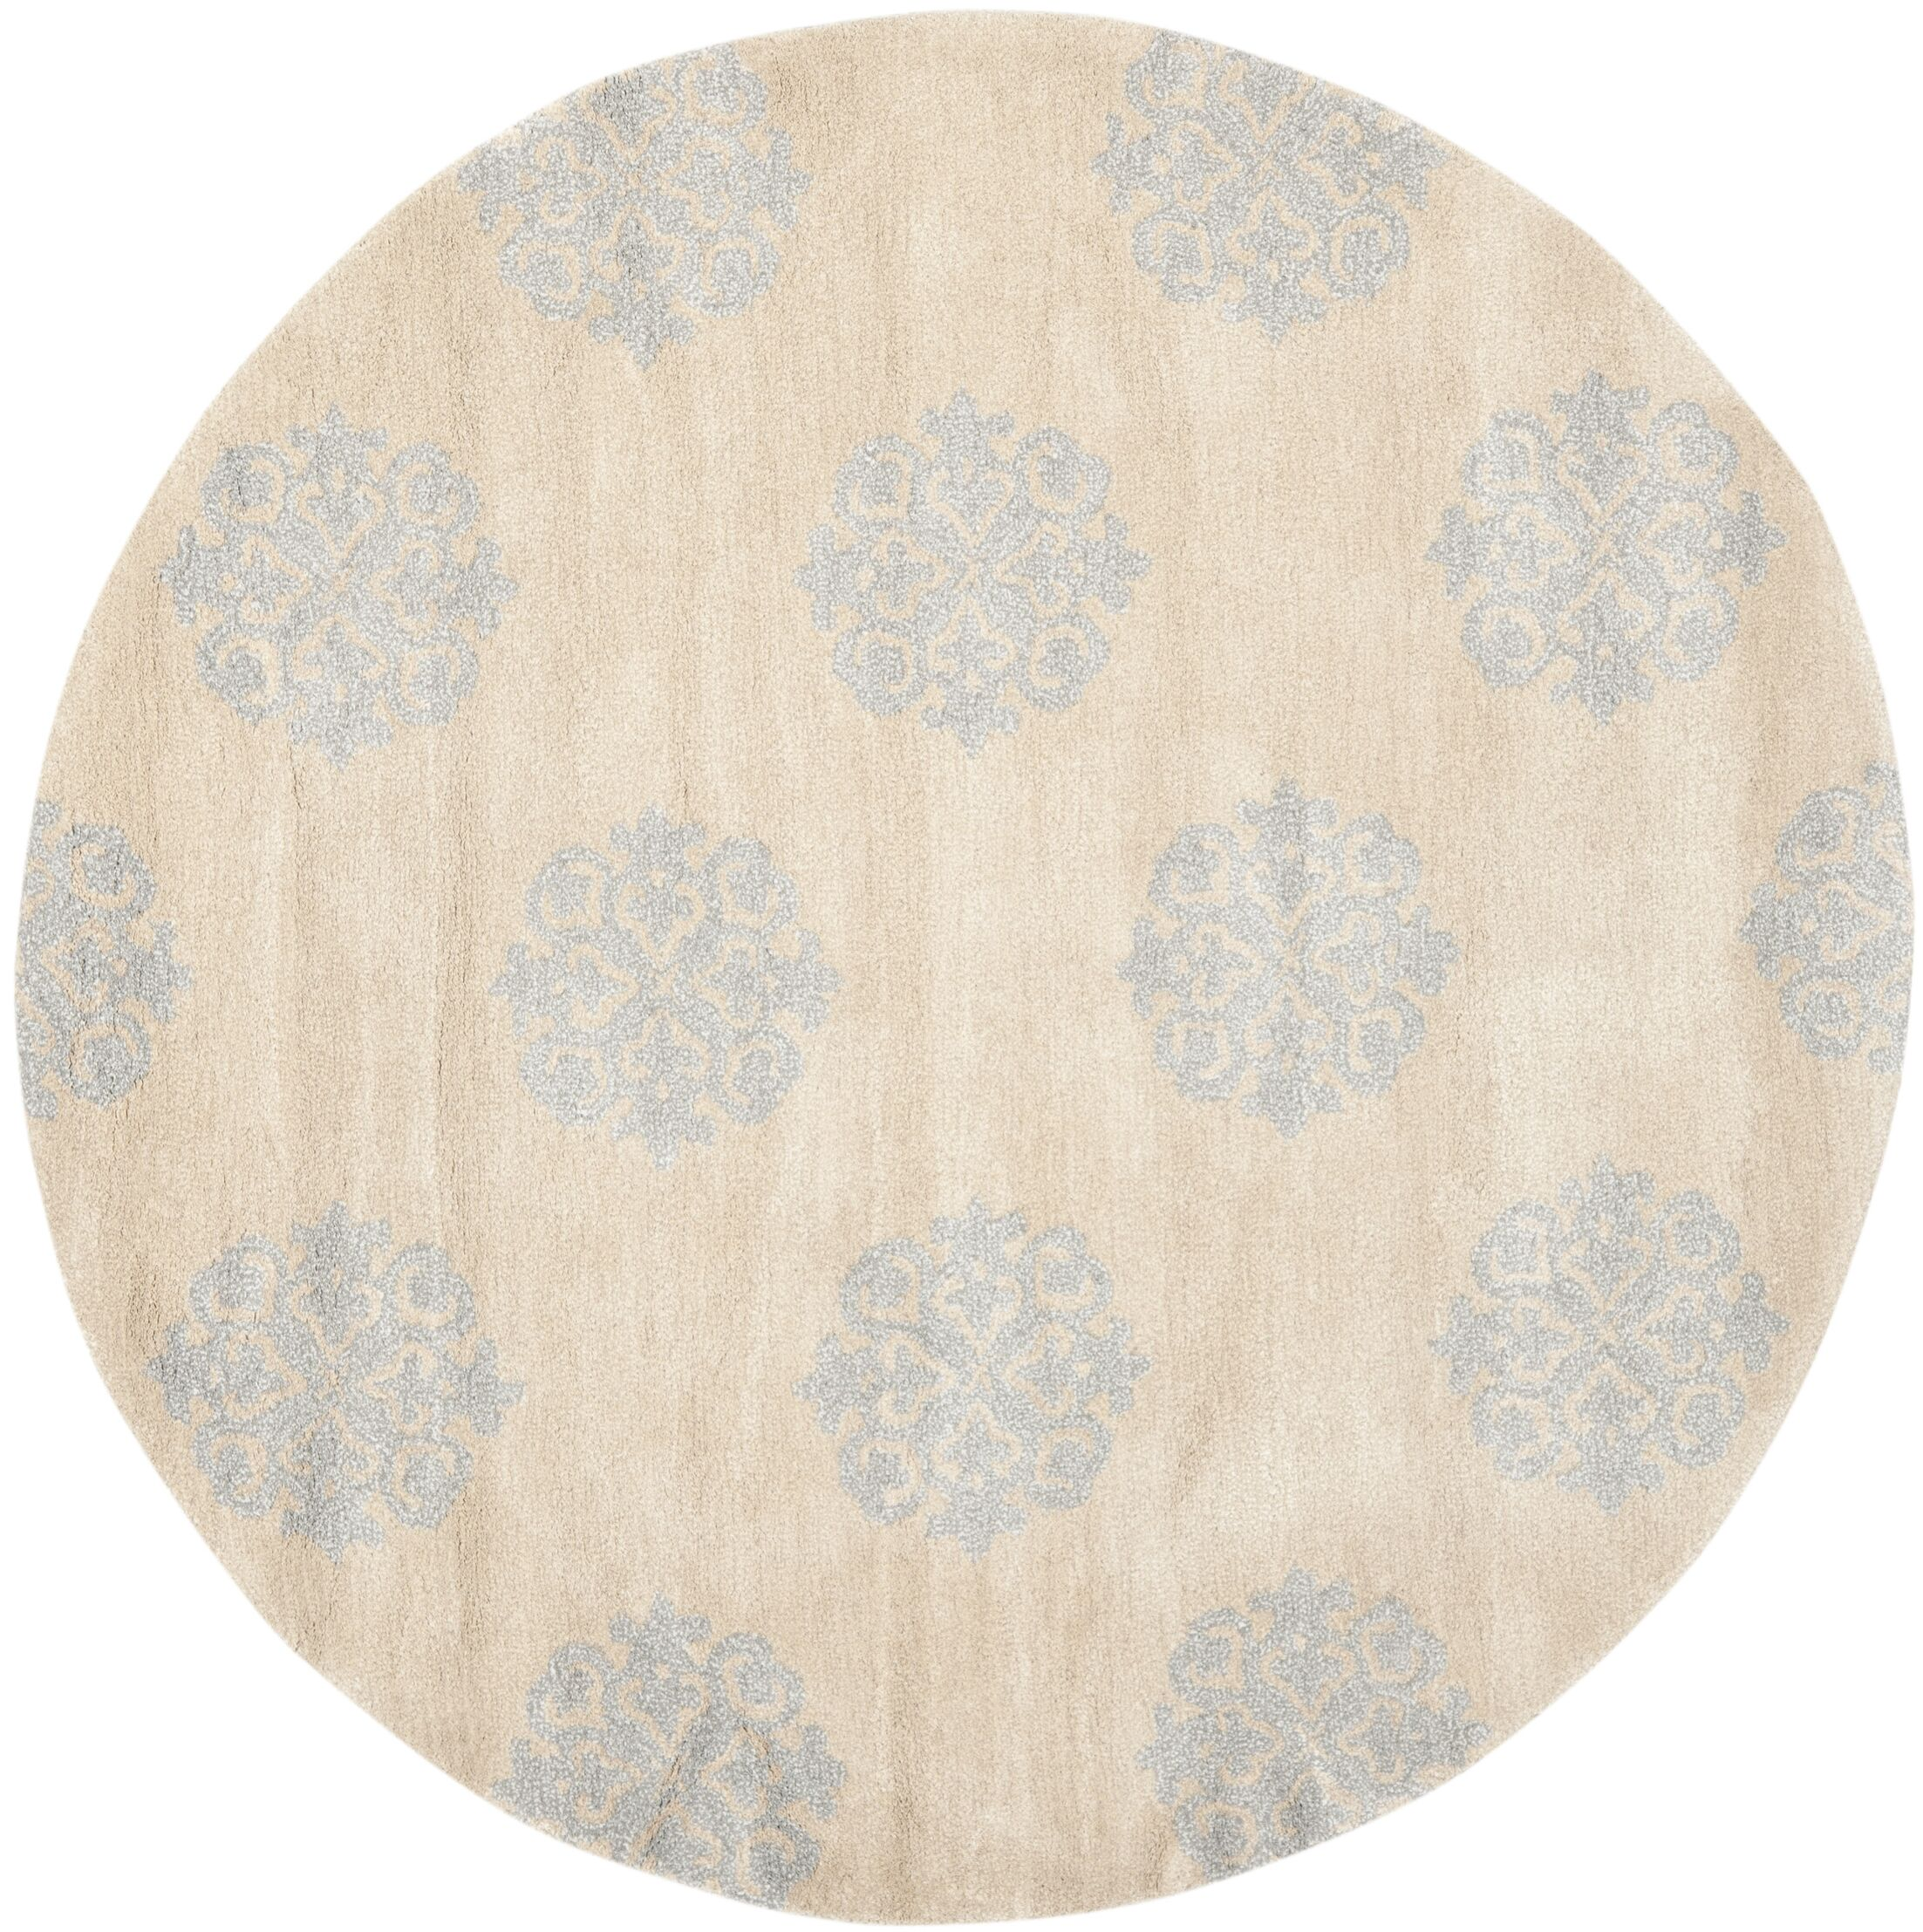 Marcello Hand-Tufted Beige Area Rug Rug Size: Rectangle 5' x 8'